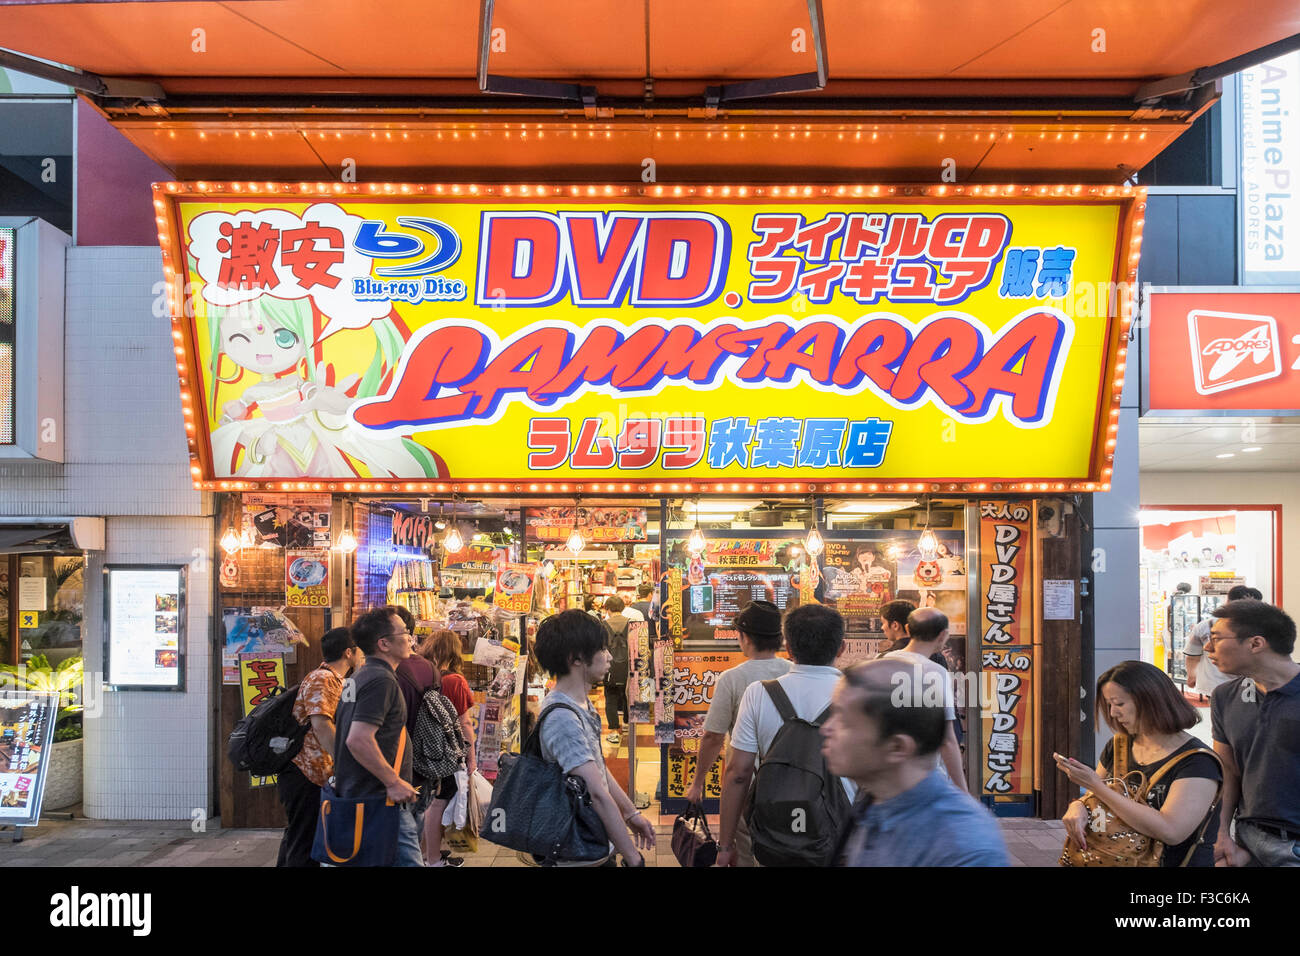 DVD video shop in Akihabara known as Electric Town or Geek Town selling Manga based games and videos in Tokyo Japan - Stock Image